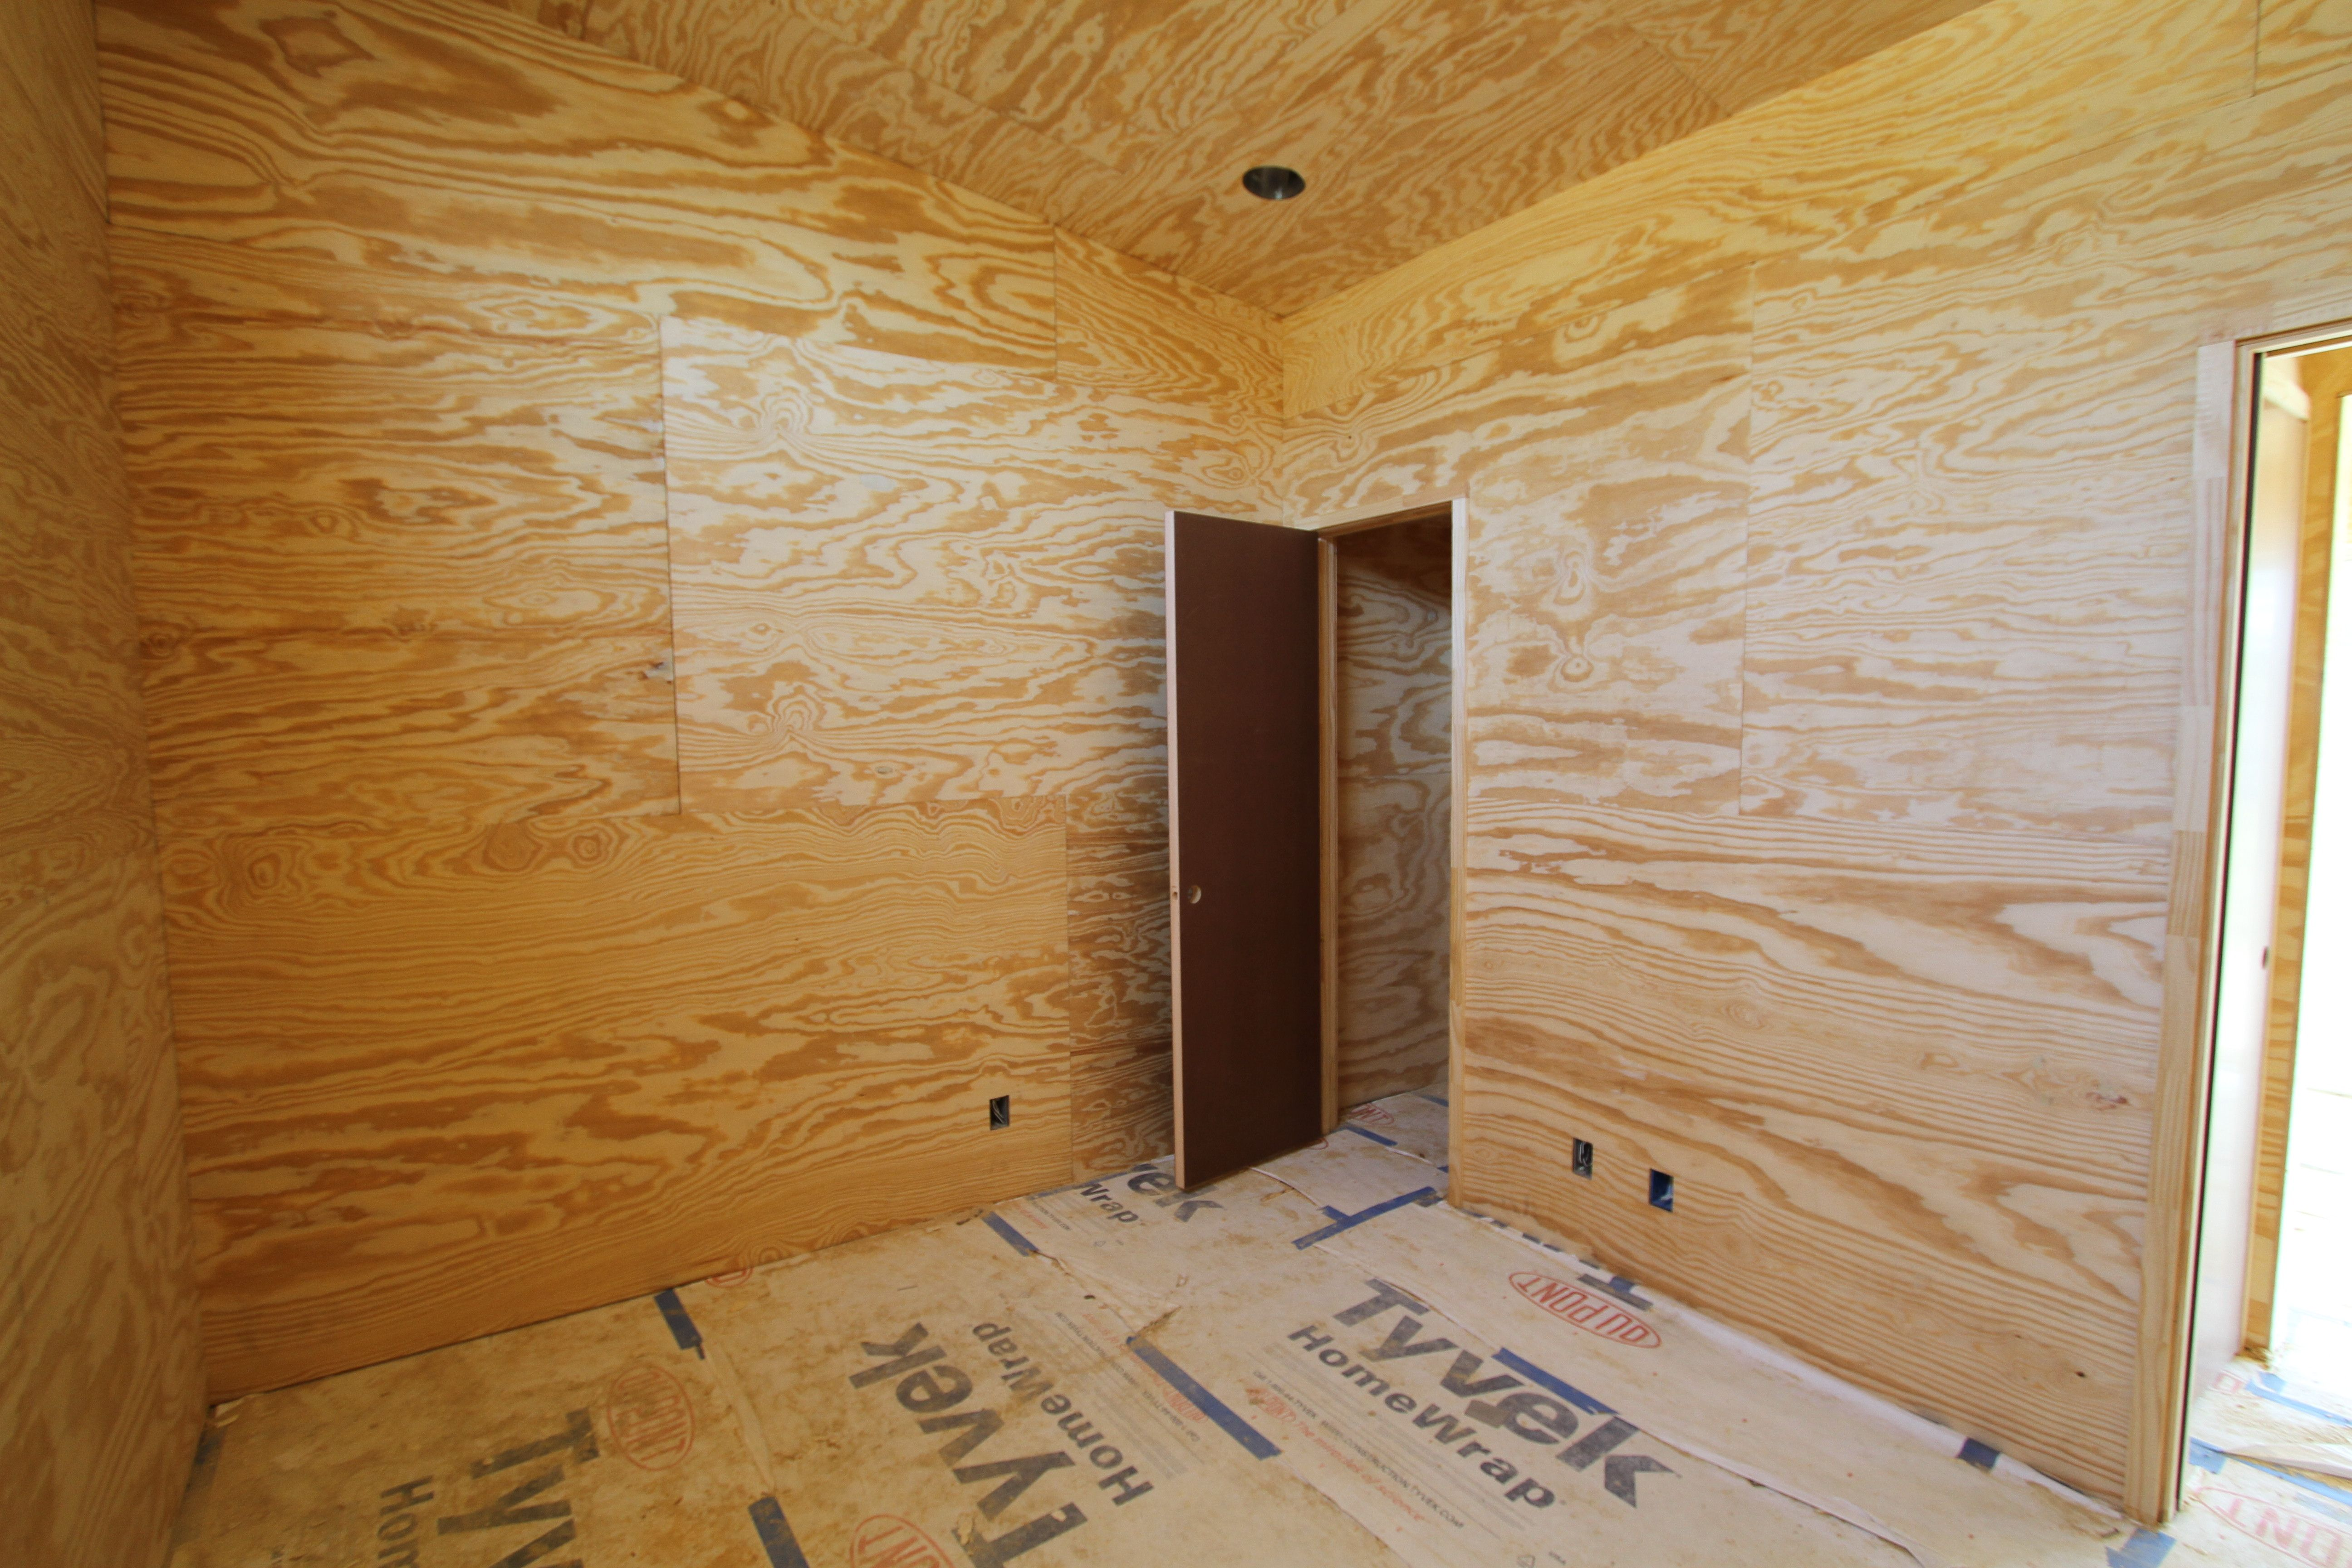 Installing plywood walls the rules of engagement - Plywood sheathing for exterior walls ...